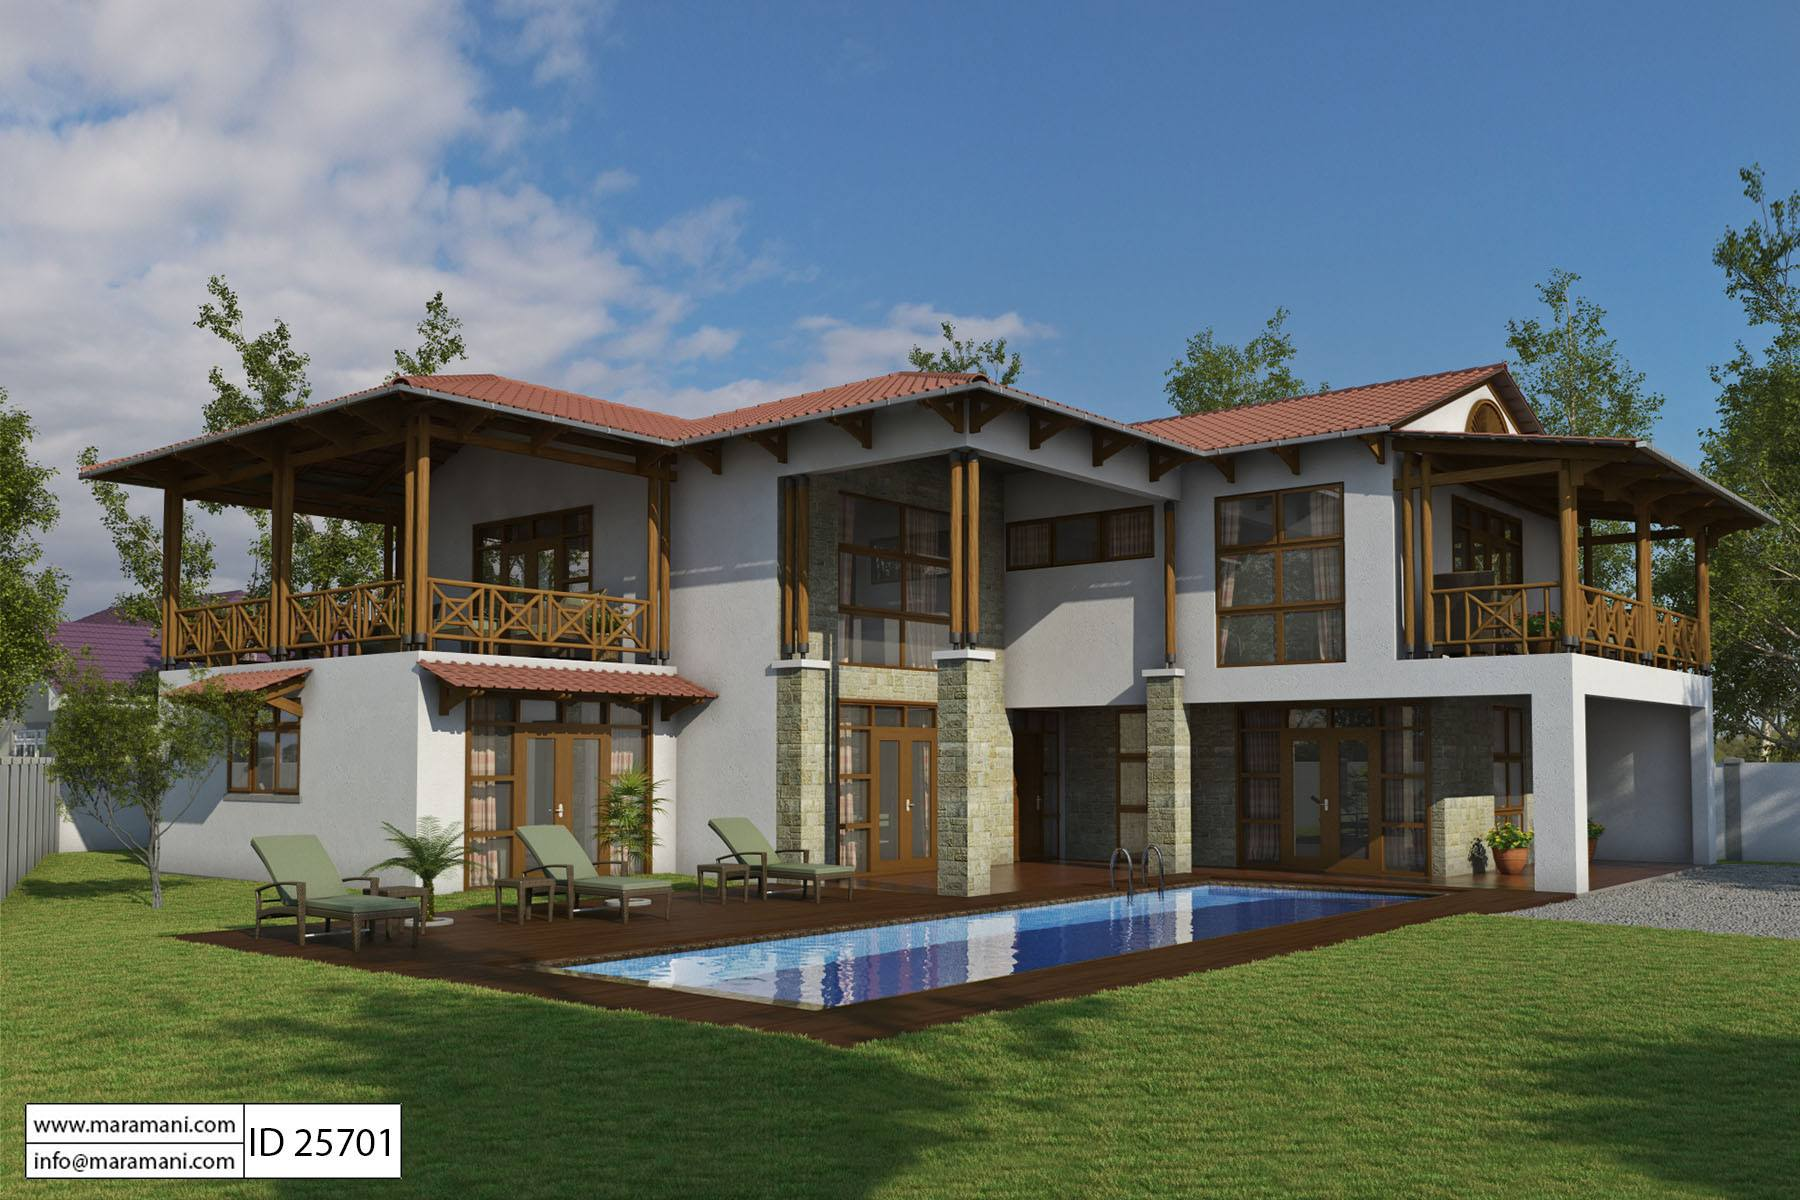 Bali style house with 5 bedrooms id 25701 house plans for House and home bedrooms